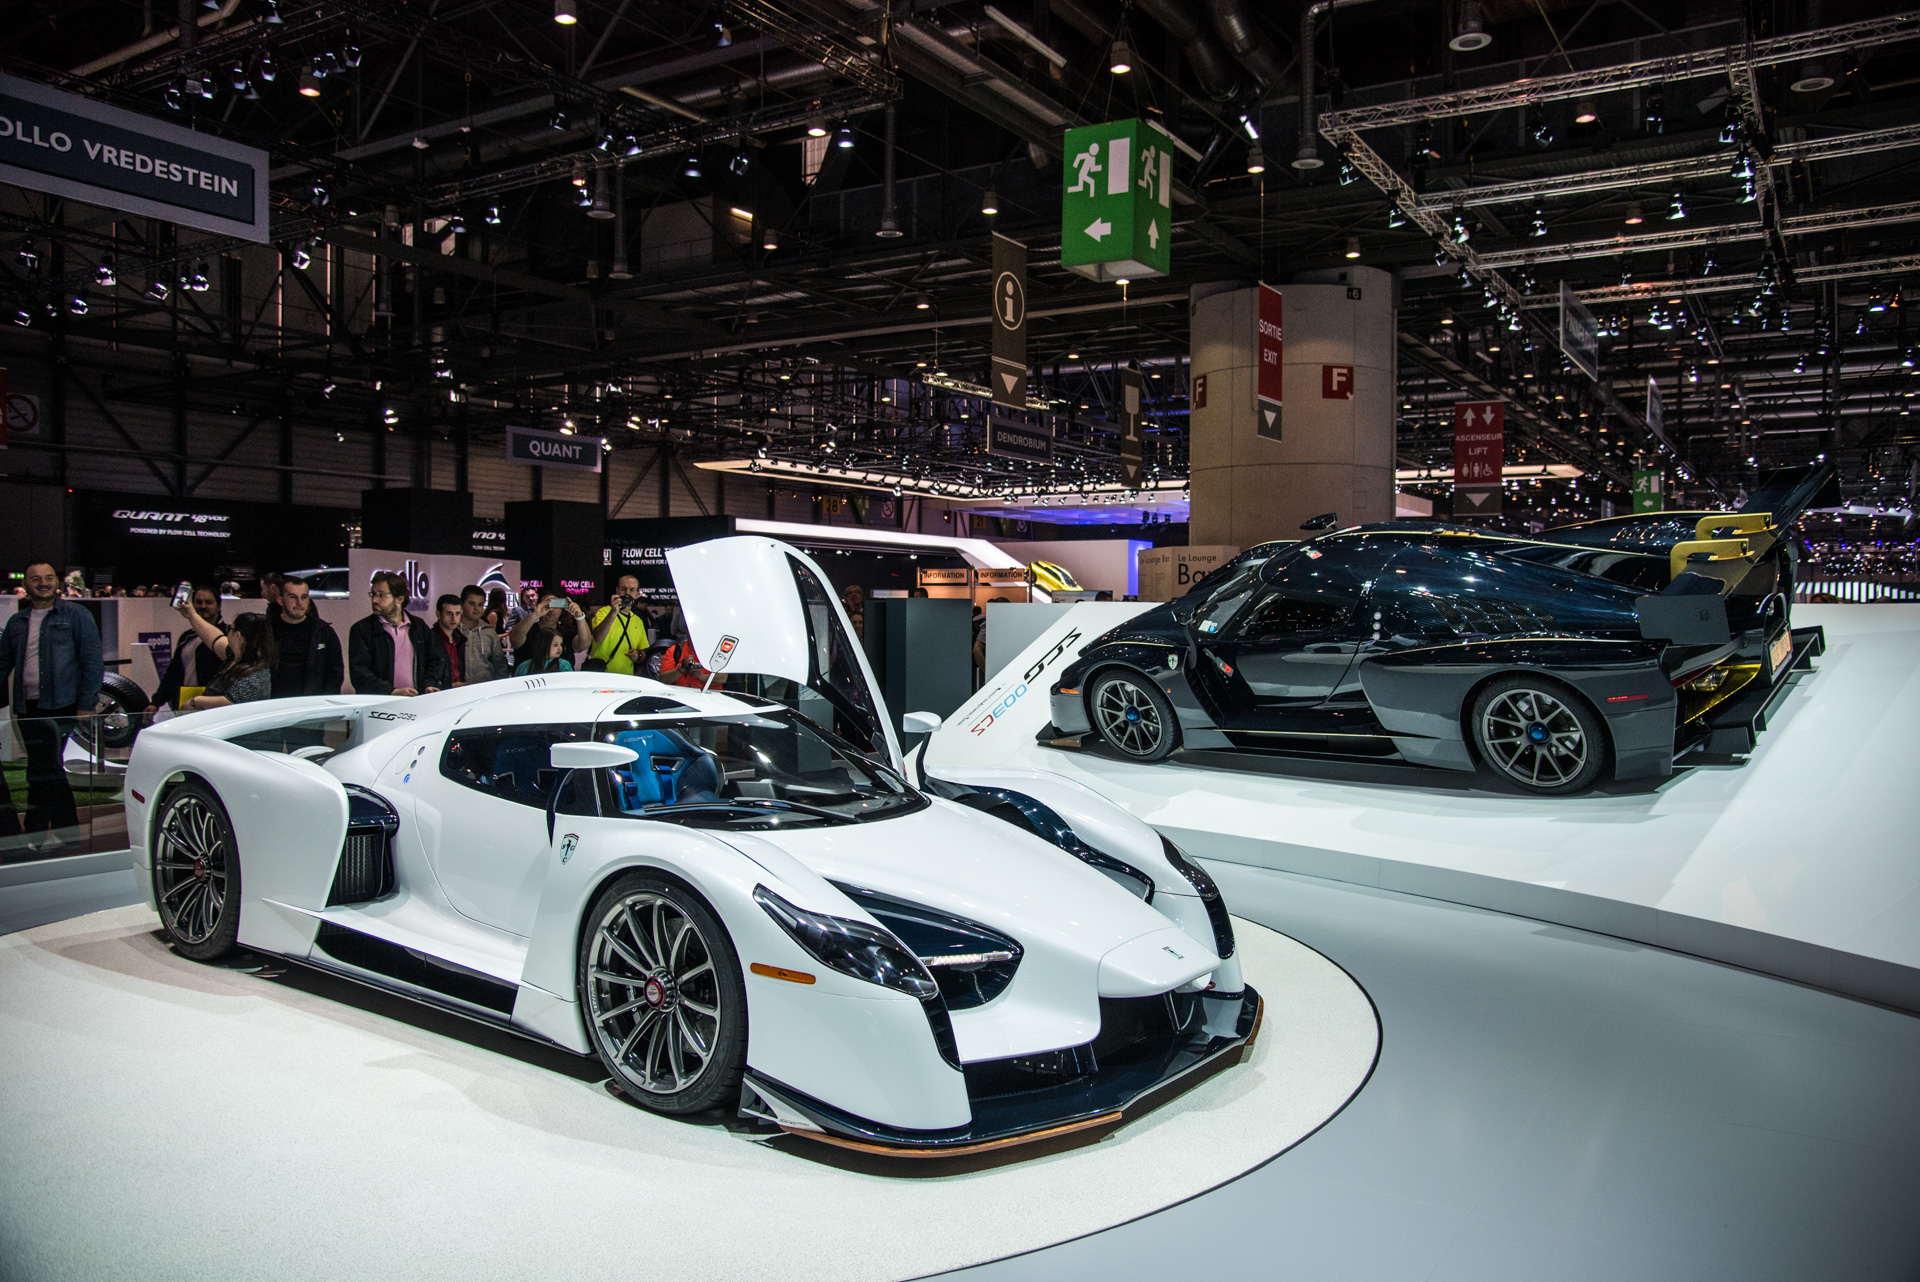 geneva-international-motor-show-igor-sinitsin-95